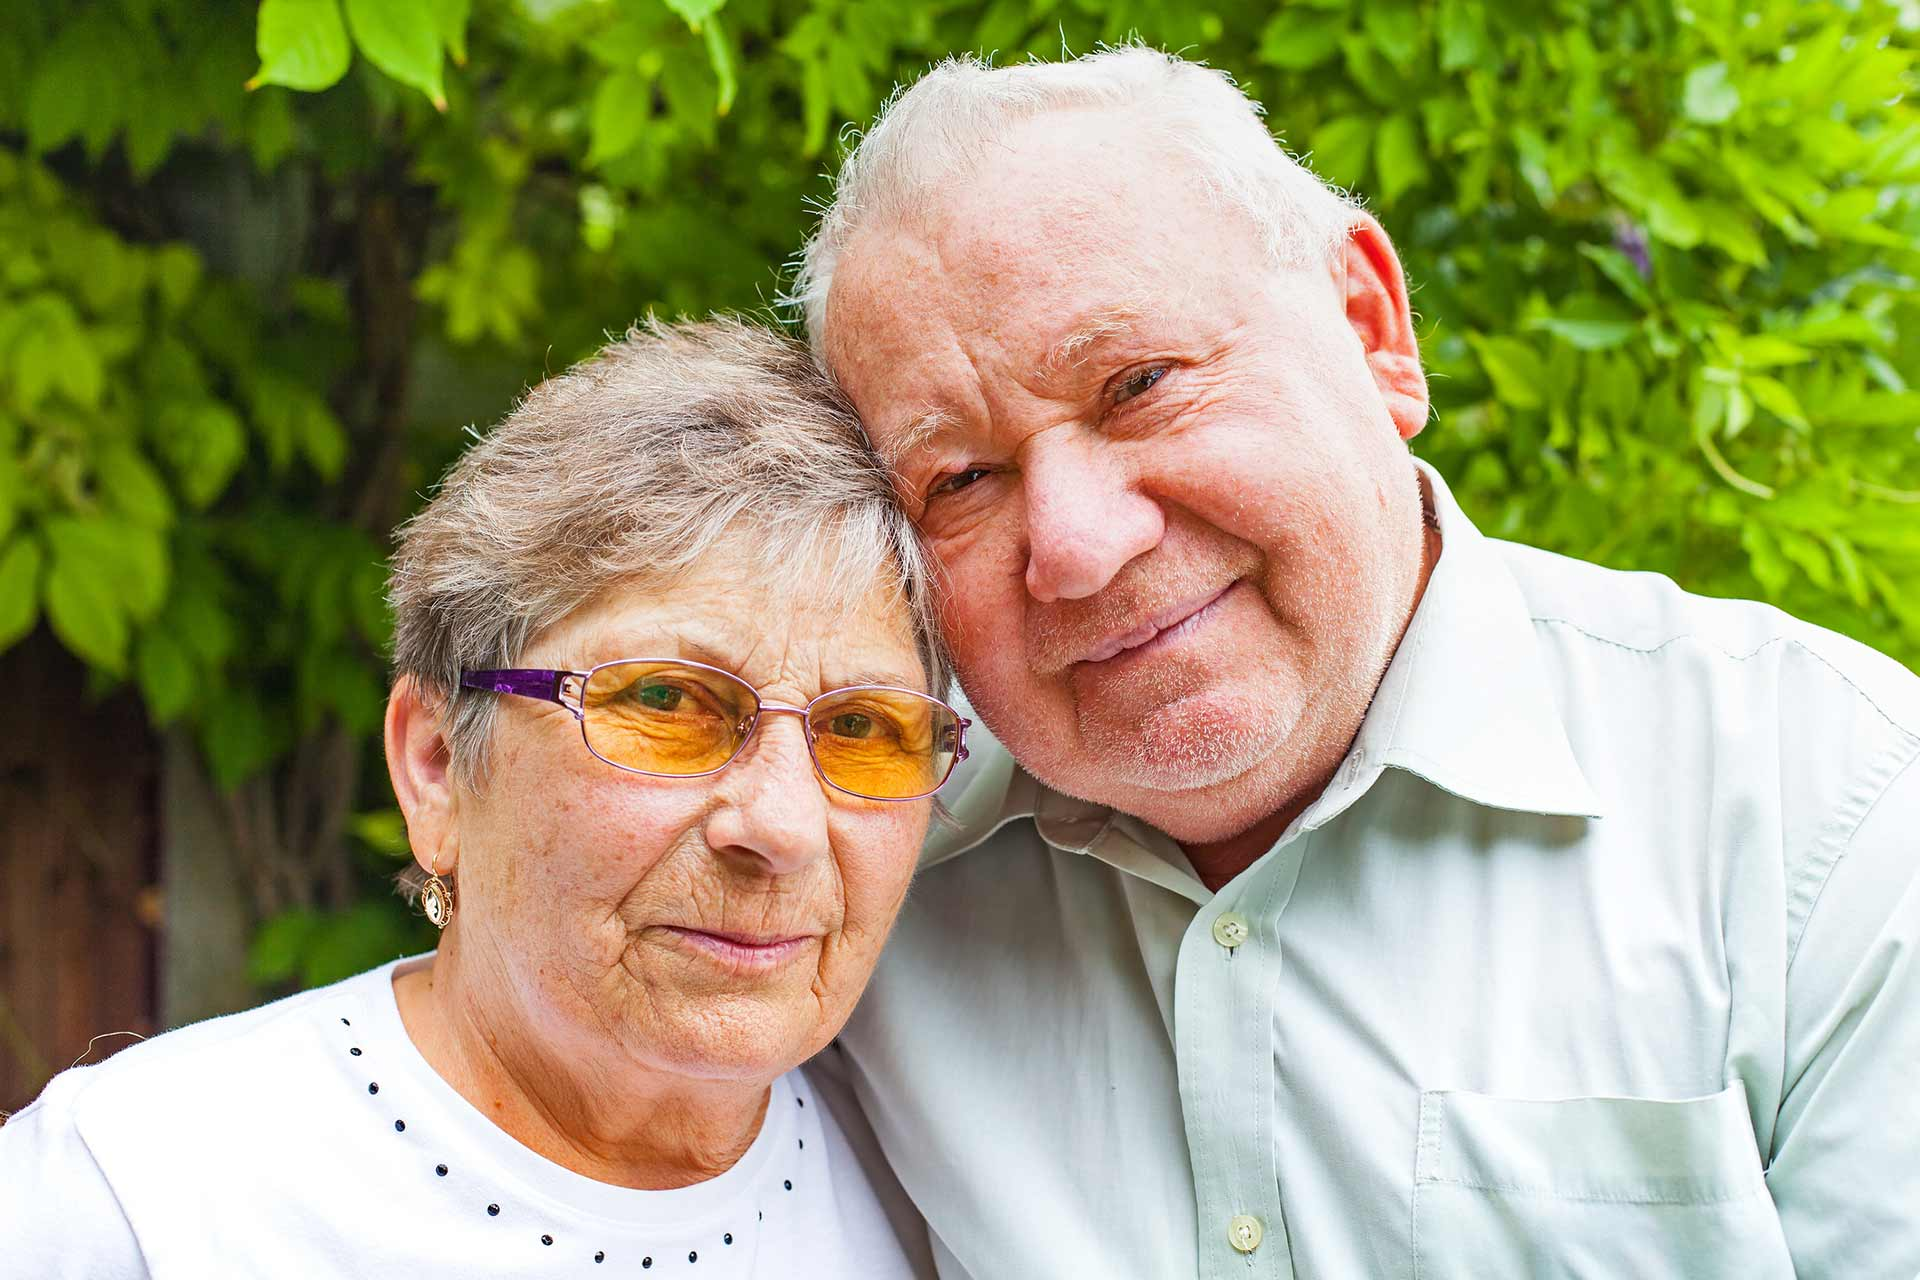 Senior husband and wife, managing the impacts of dementia diagnosis together